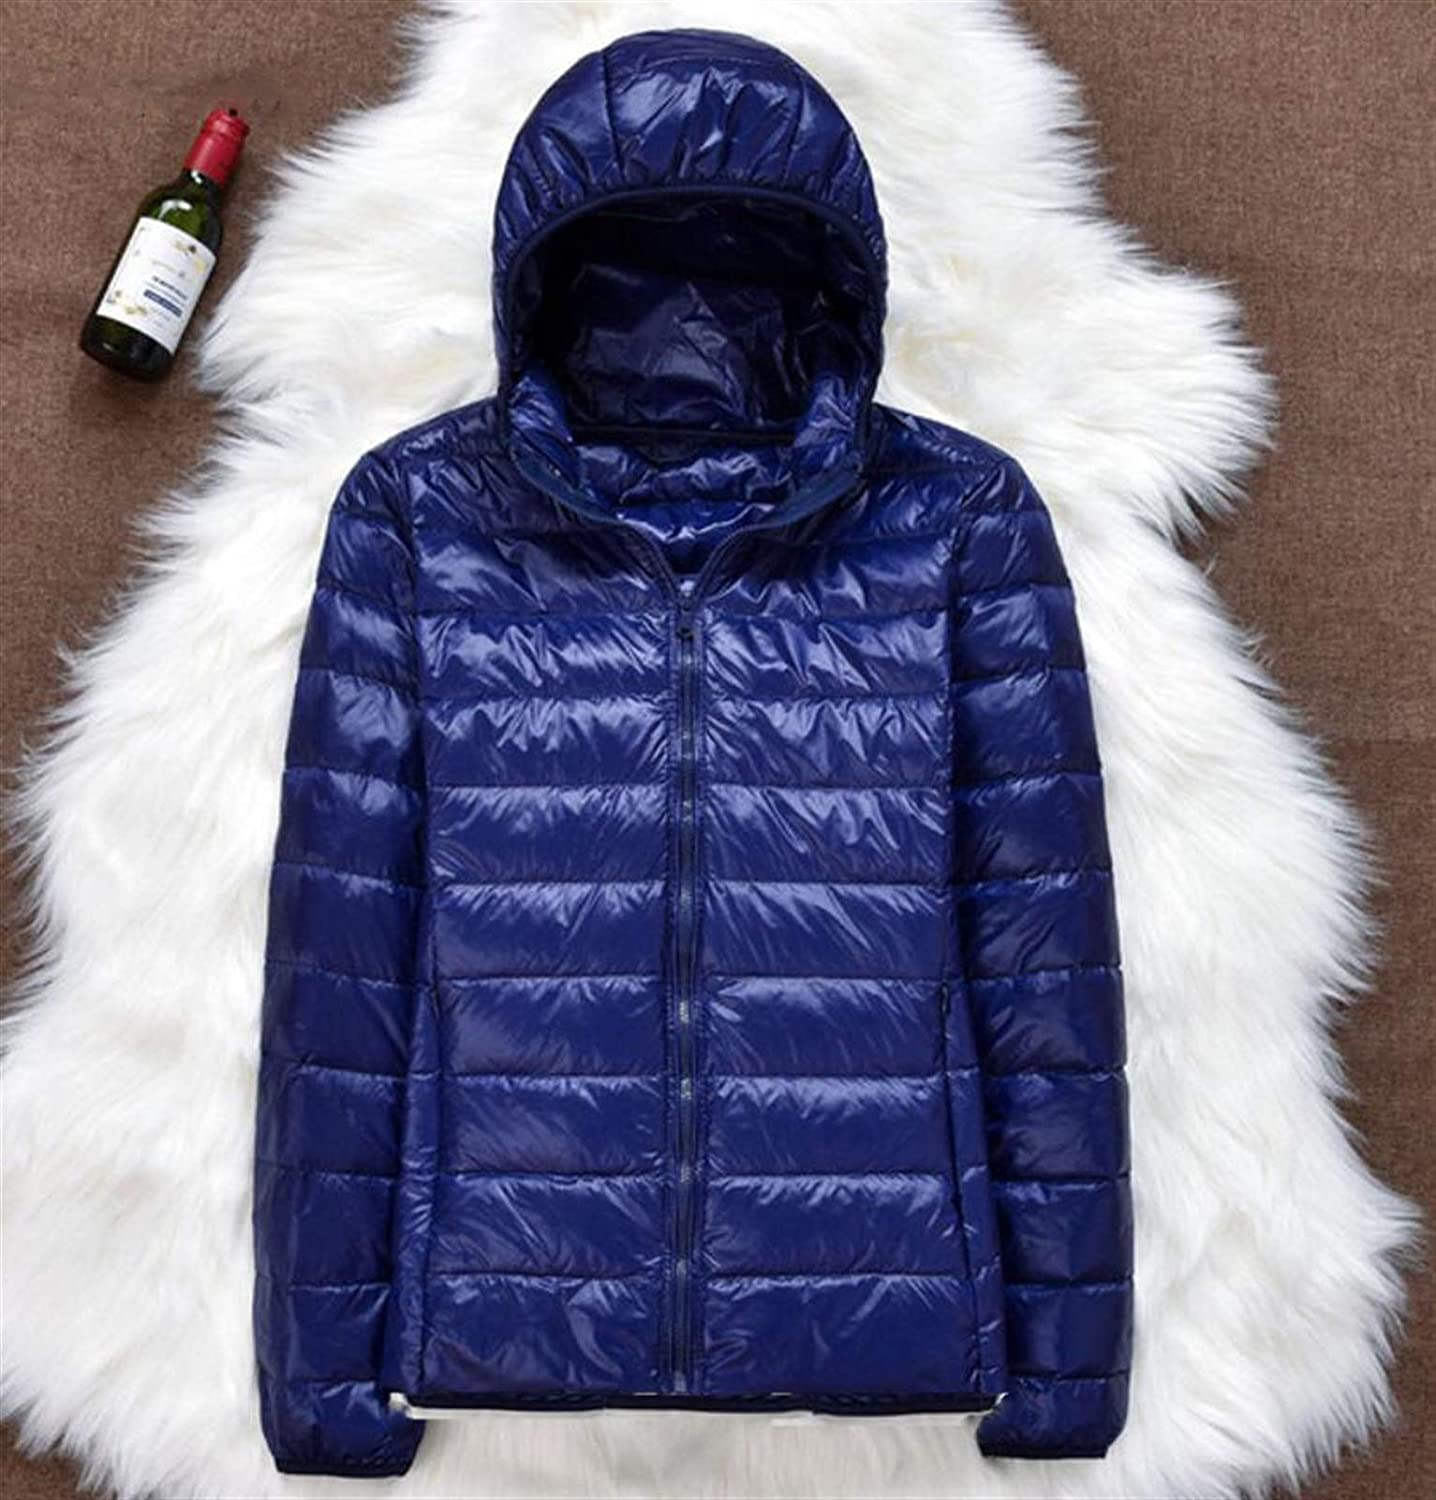 Cash special price Thickened Down Jacket Leather Plaid Light Ultra Coat Super-cheap New Winter